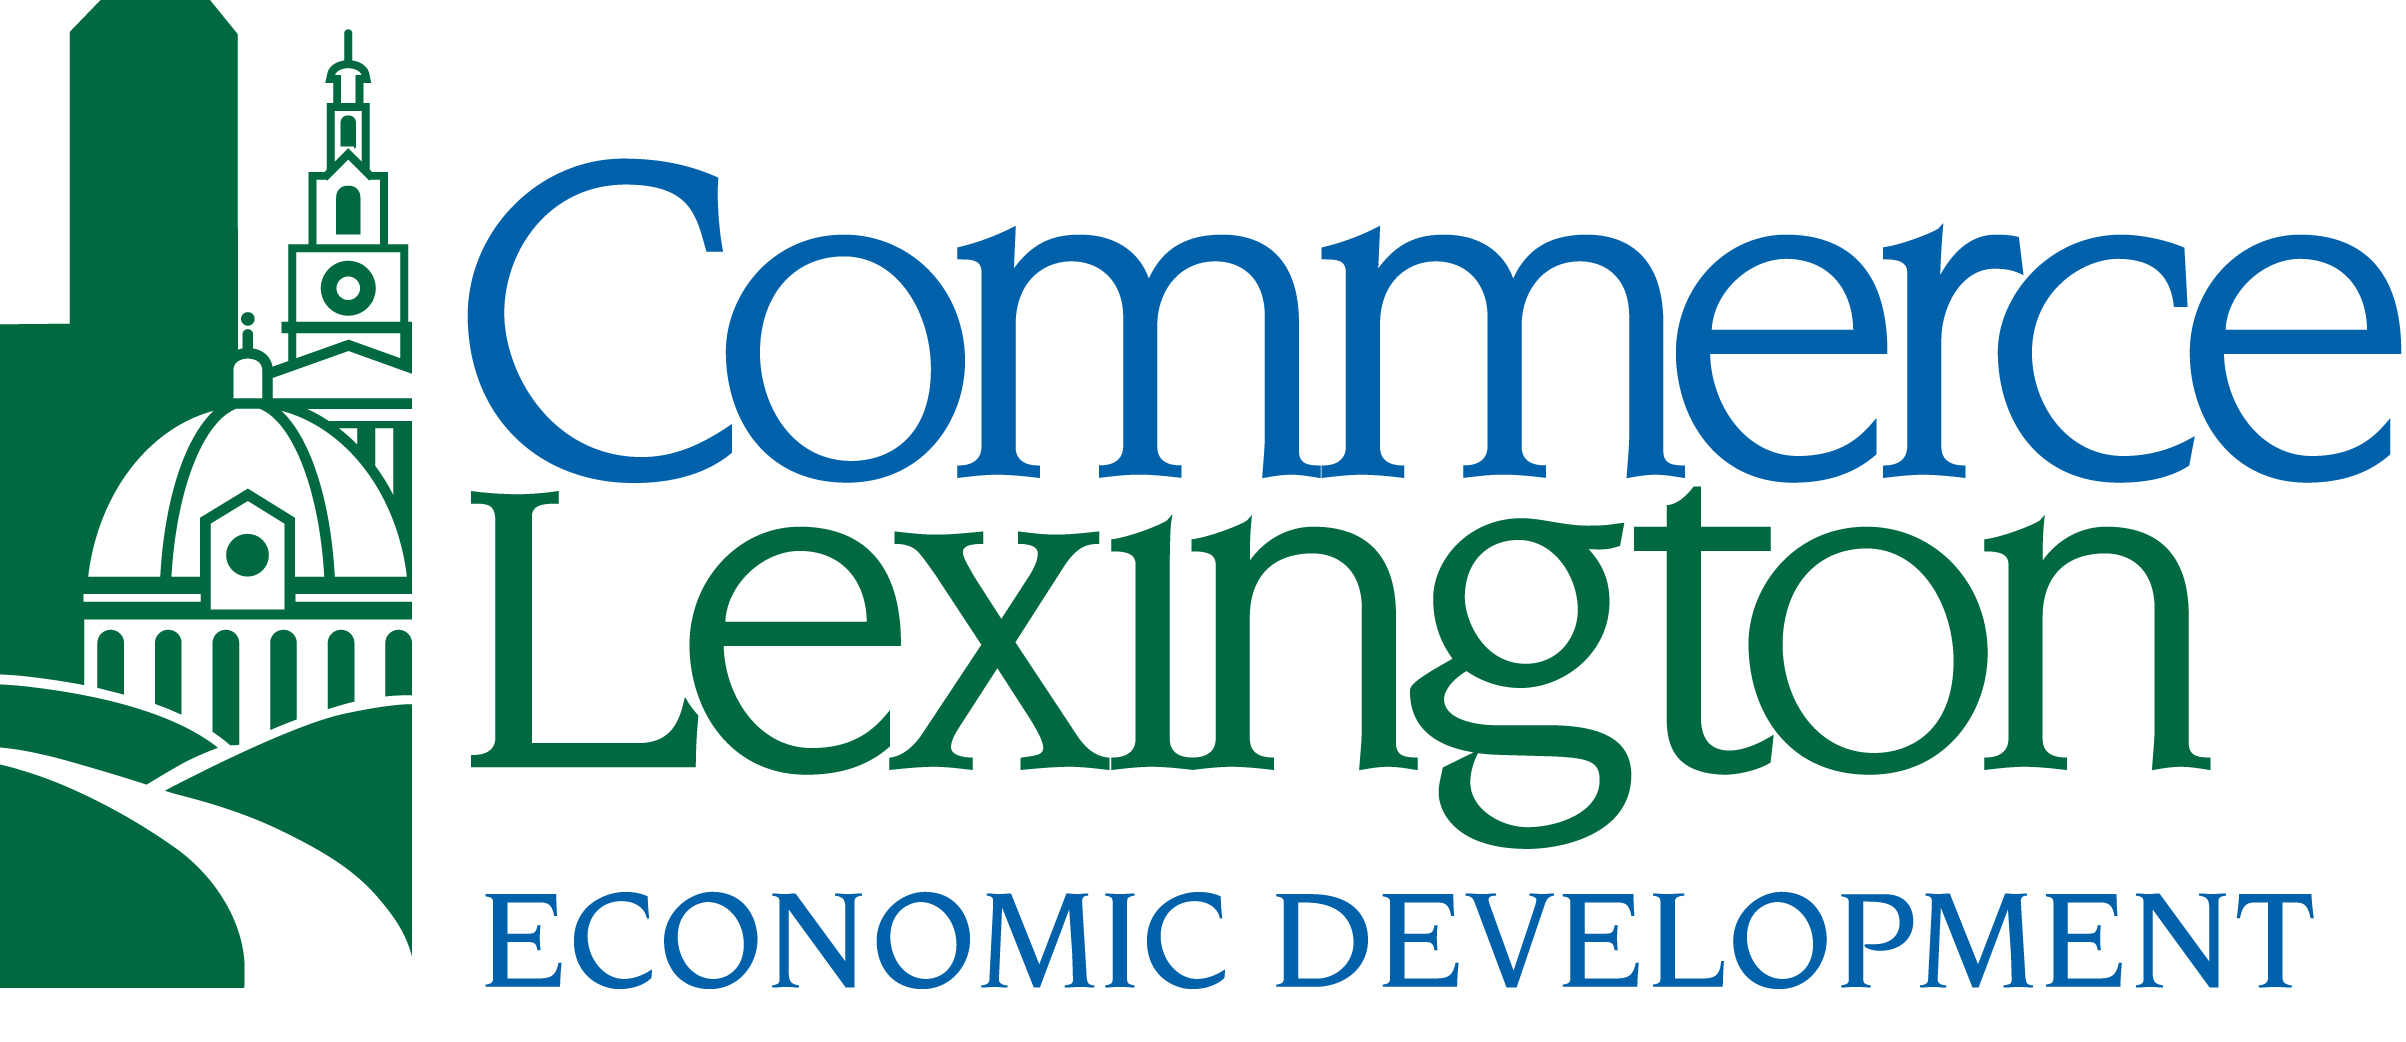 COMMERCE LEXINGTON ECONOMIC DEVELOPMENT